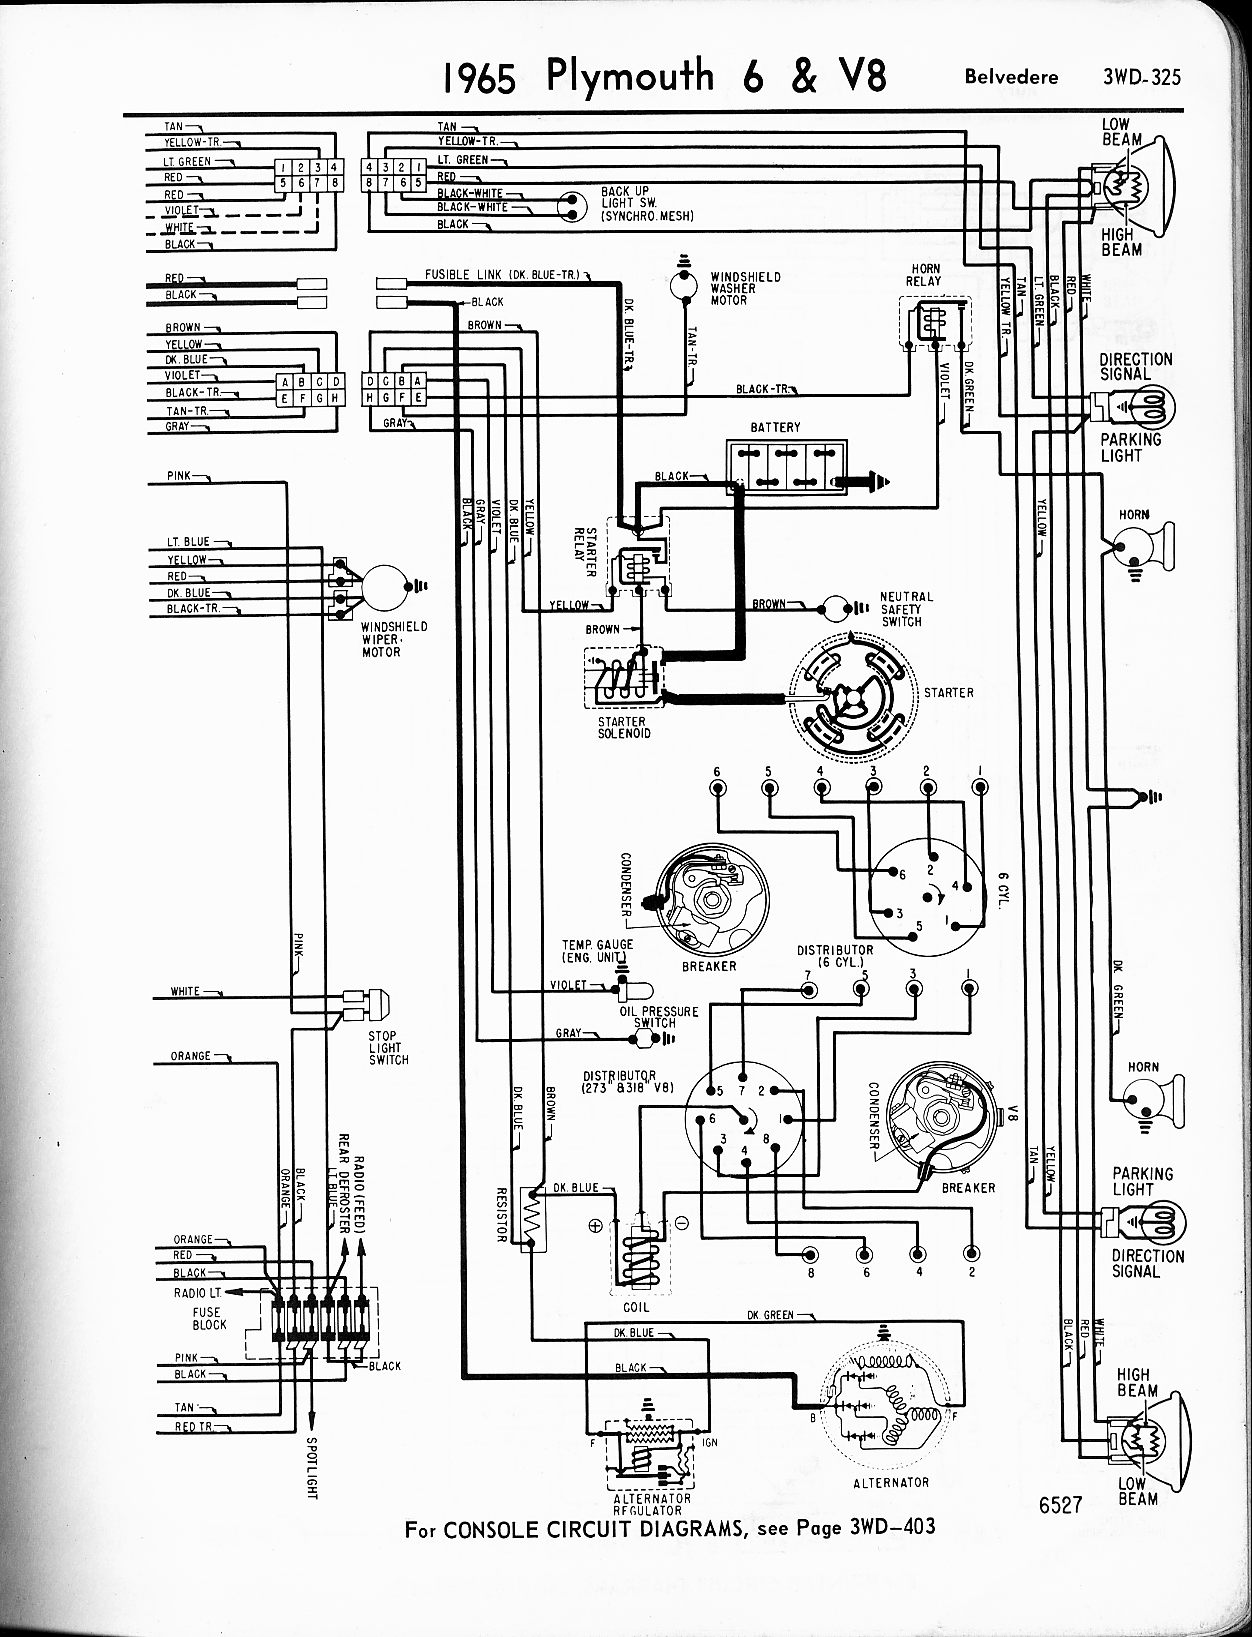 74 charger headlight wiring diagrams egy n england joinery uk Wiring Chart 74 charger wiring diagrams wiring diagram rh 32 geschiedenisanders nl hid headlight wiring diagram gm headlight switch wiring diagram